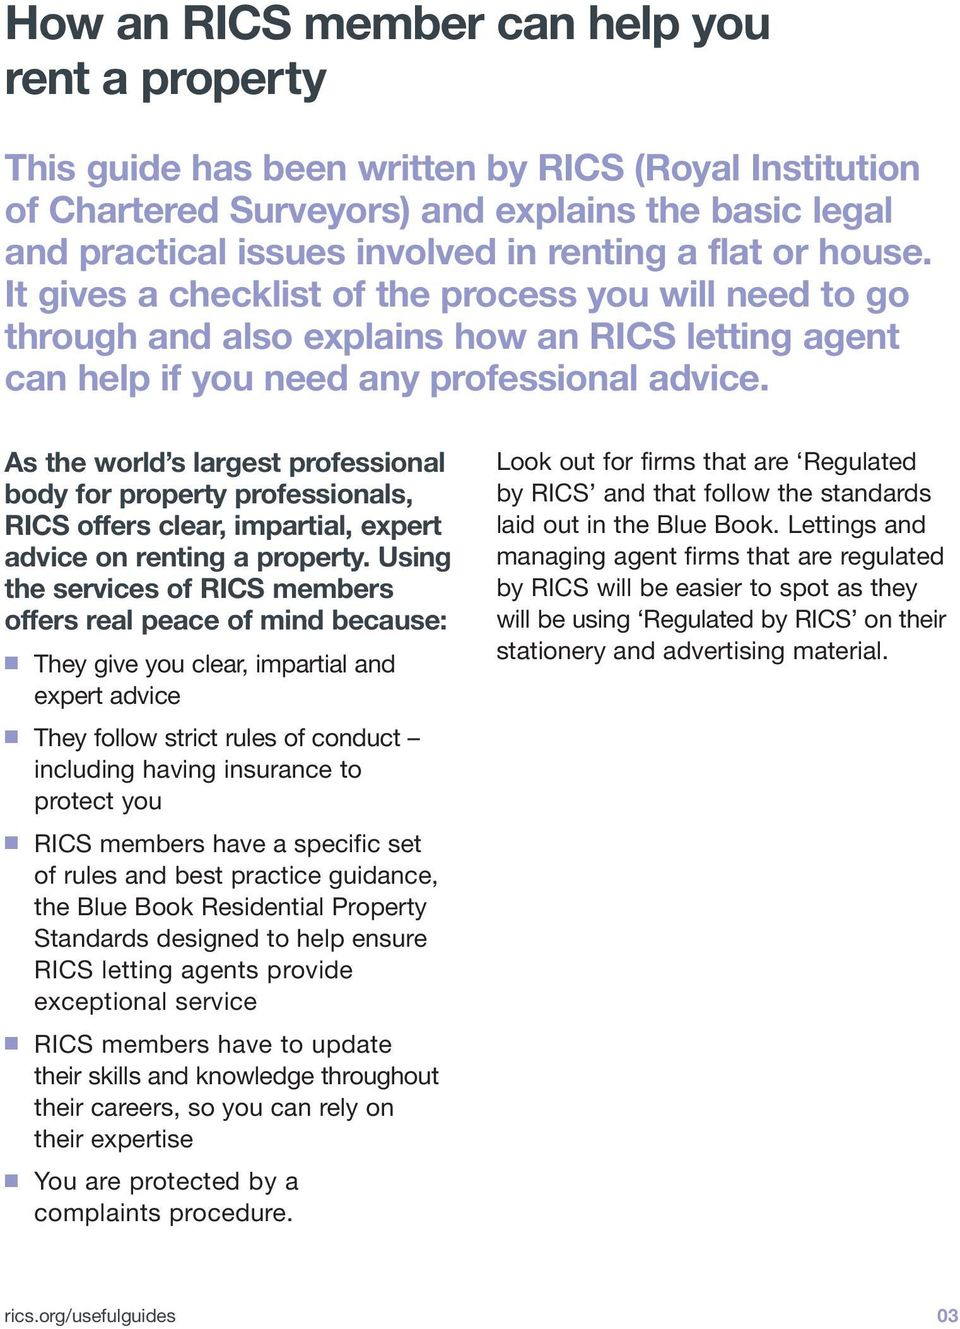 As the world s largest professional body for property professionals, RICS offers clear, impartial, expert advice on renting a property.